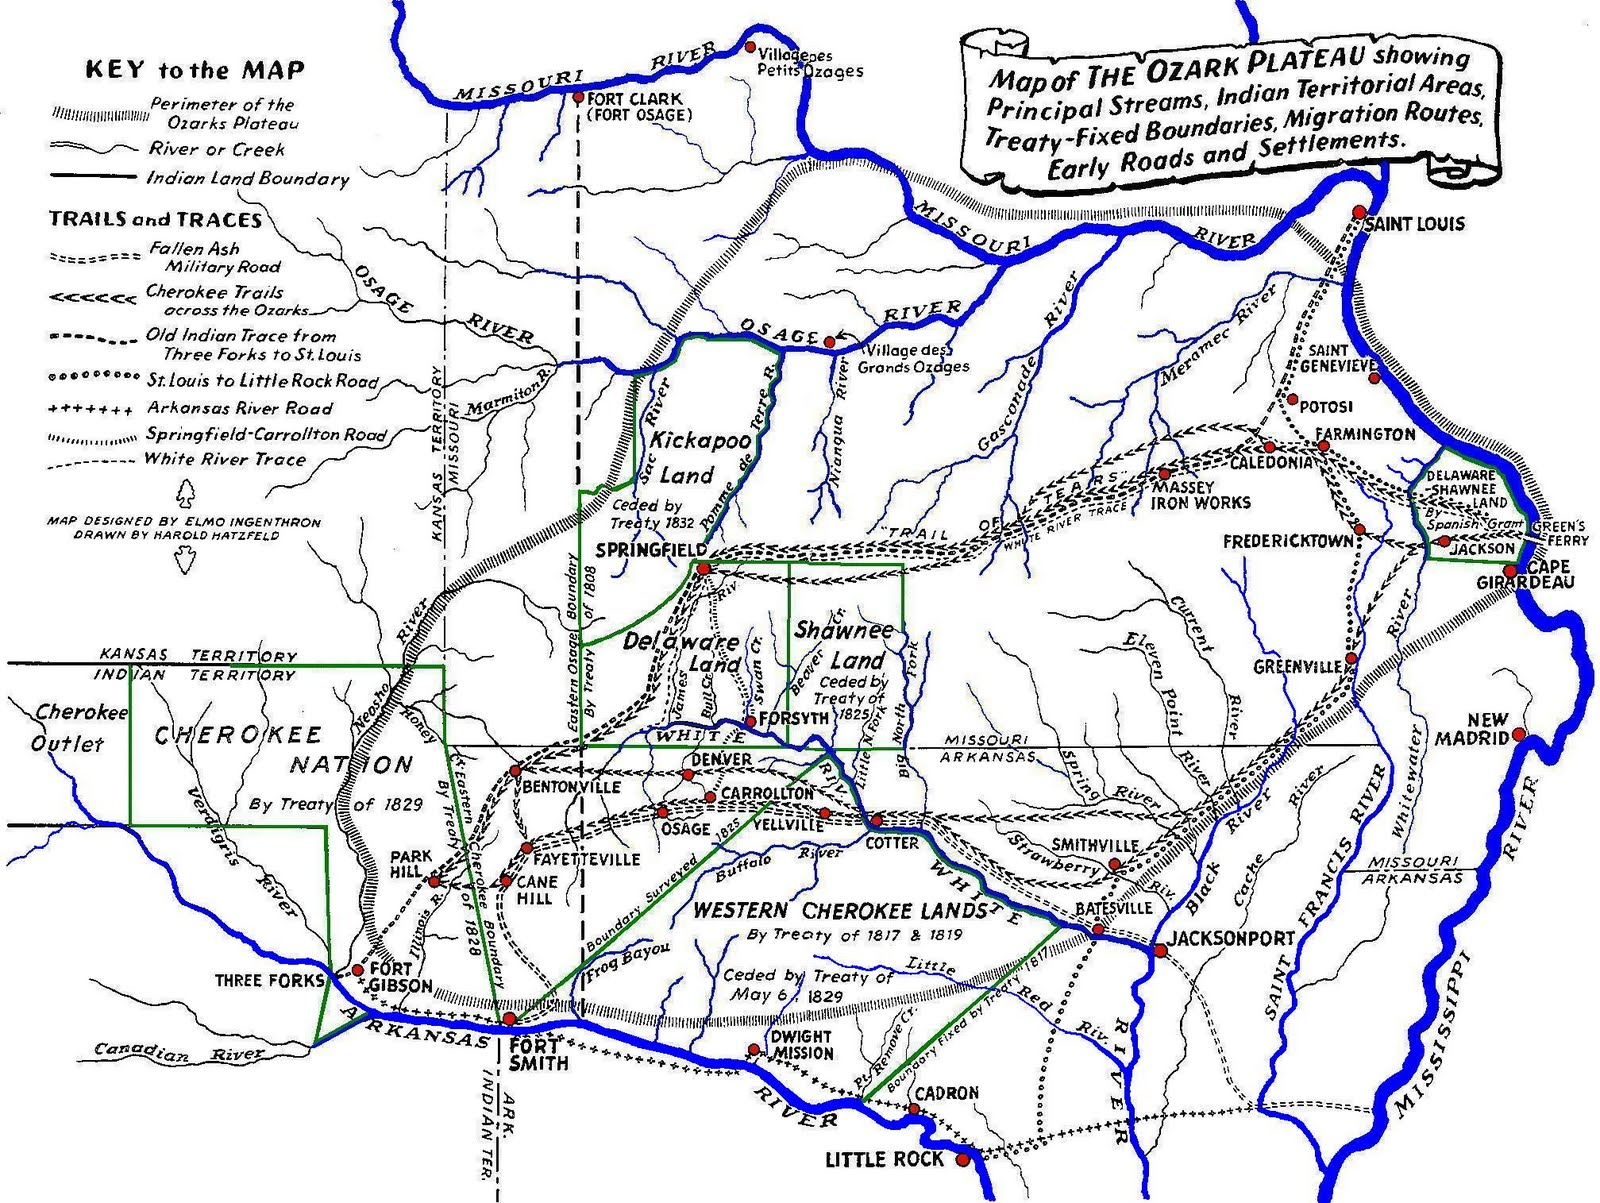 Ozarks History Ruins Of Early Smelters - Ozark plateau on us map